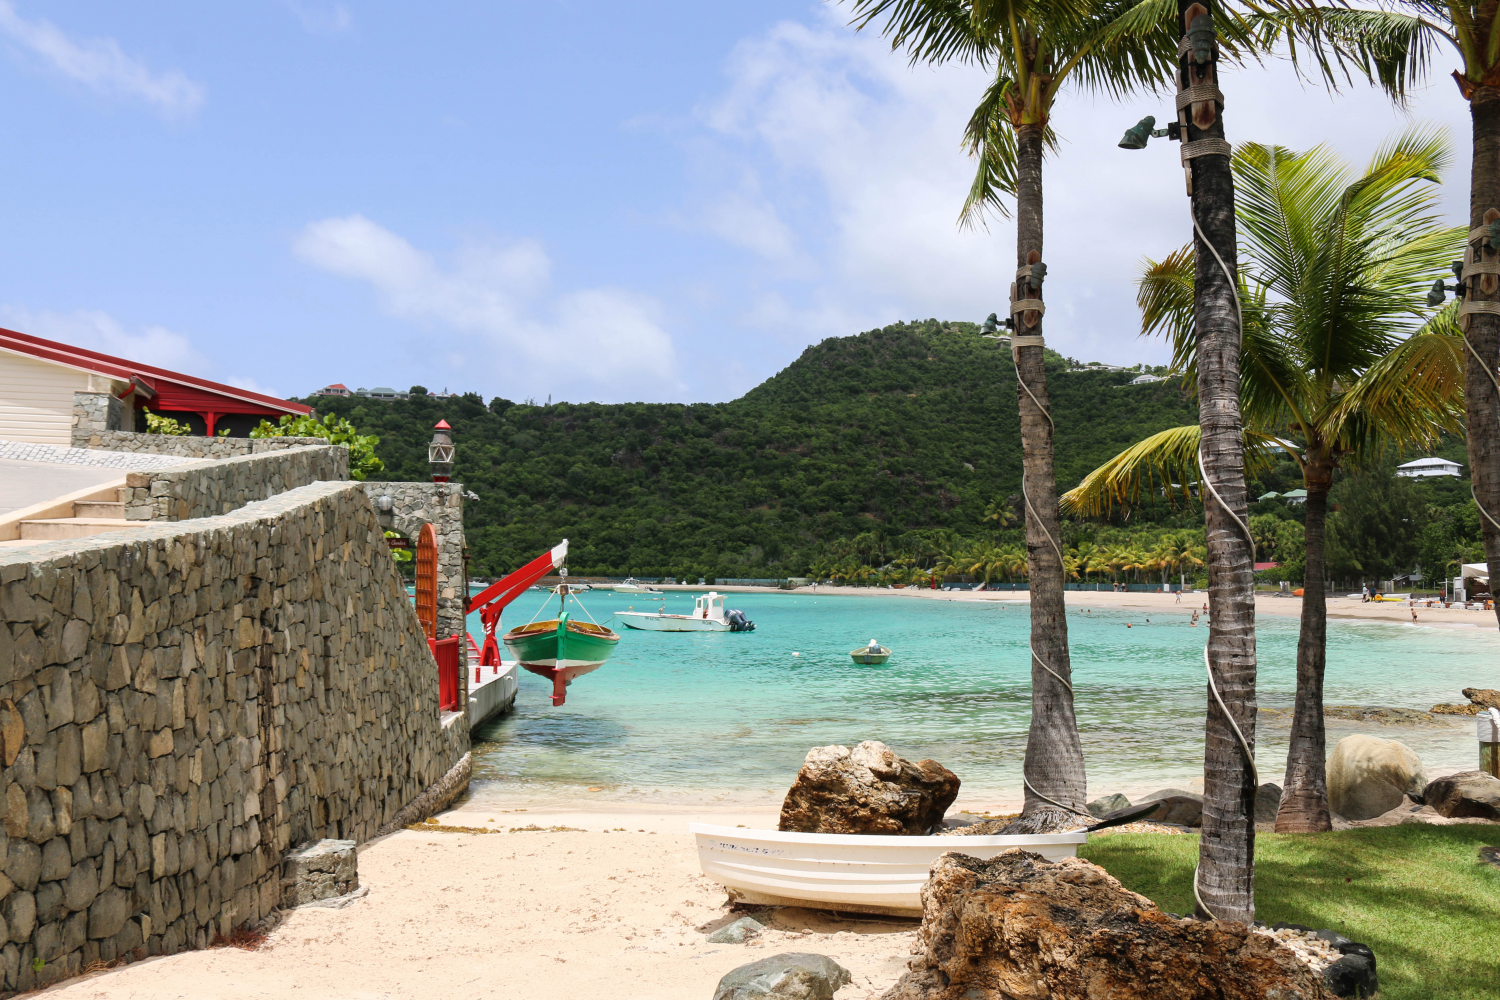 The best beach in St. Barths